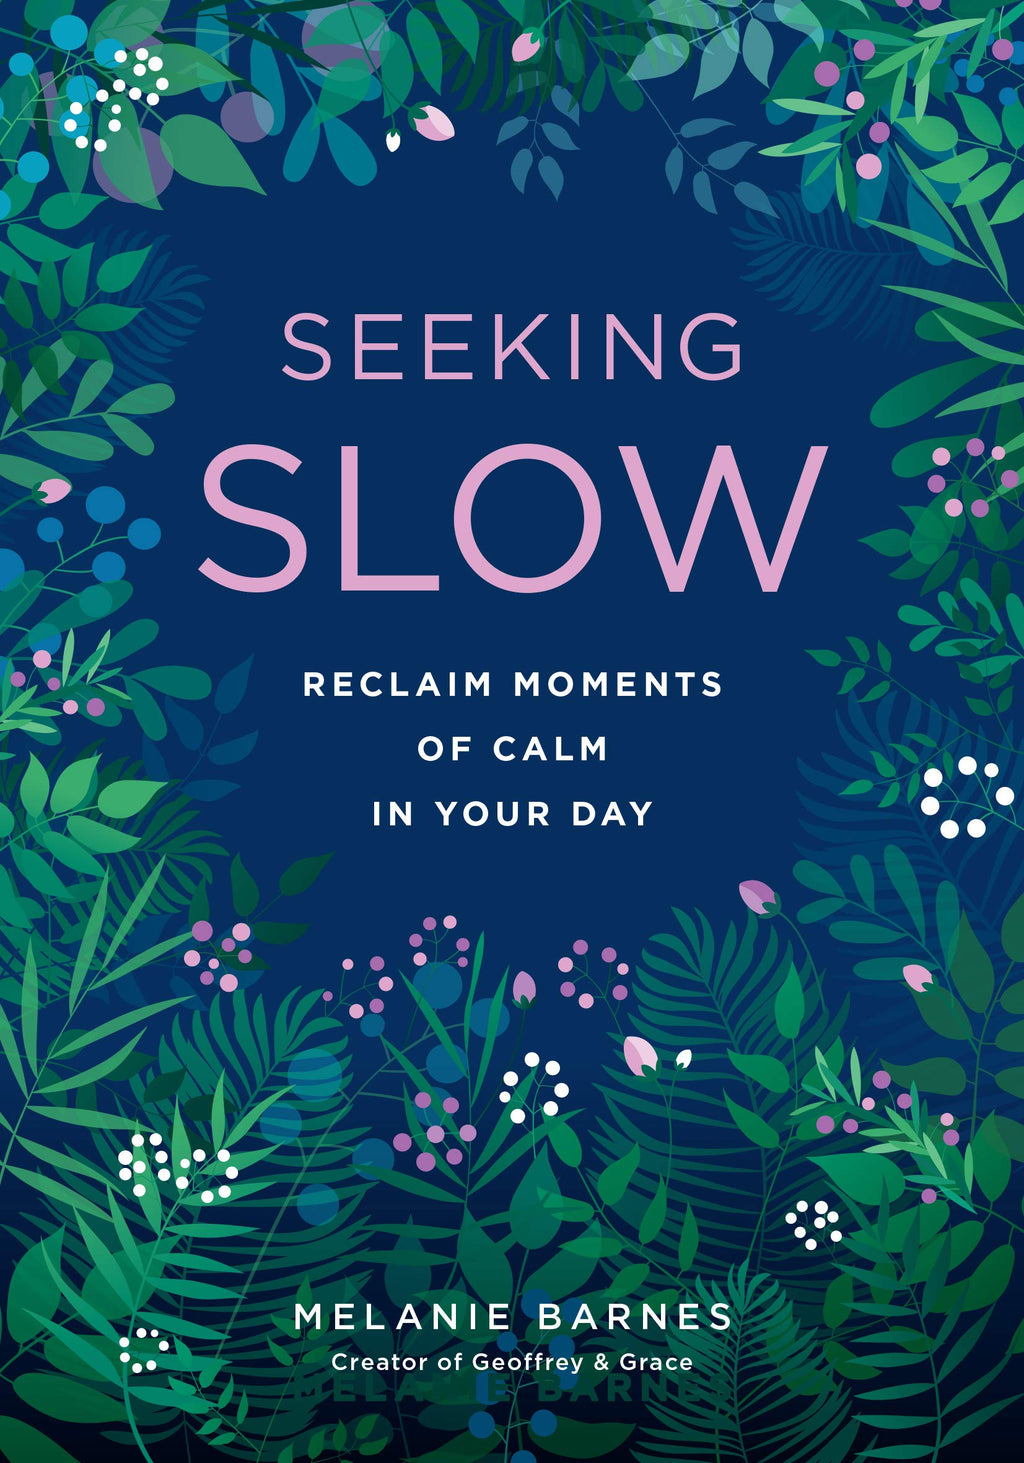 Seeking Slow by Melanie Barnes